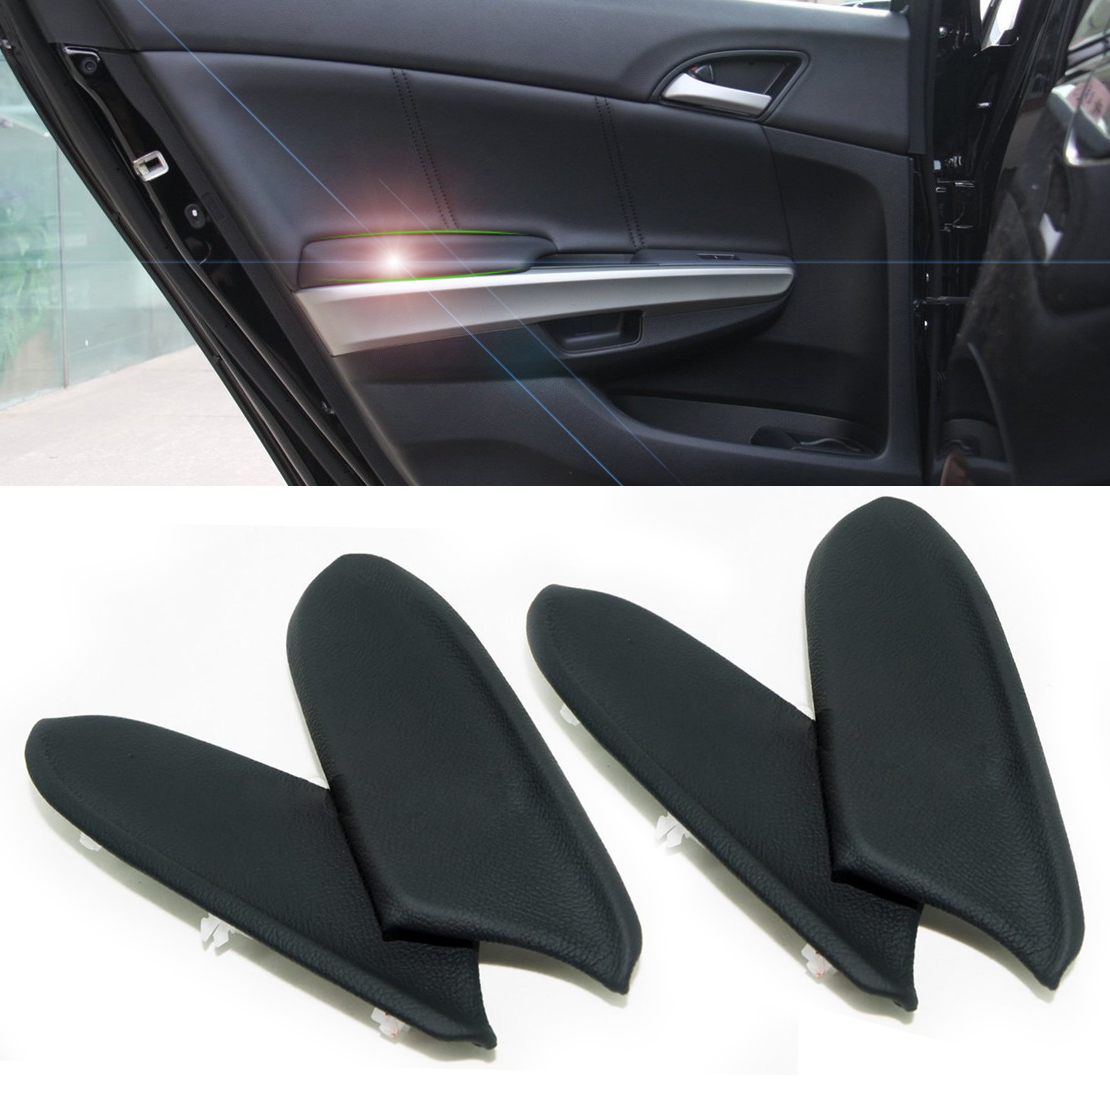 DWCX 4X Black Leather Front & Rear Door Panels Armrest Skin Covers for Honda Accord 2008 2009 2010 2011 2012 DIY only for Sedan